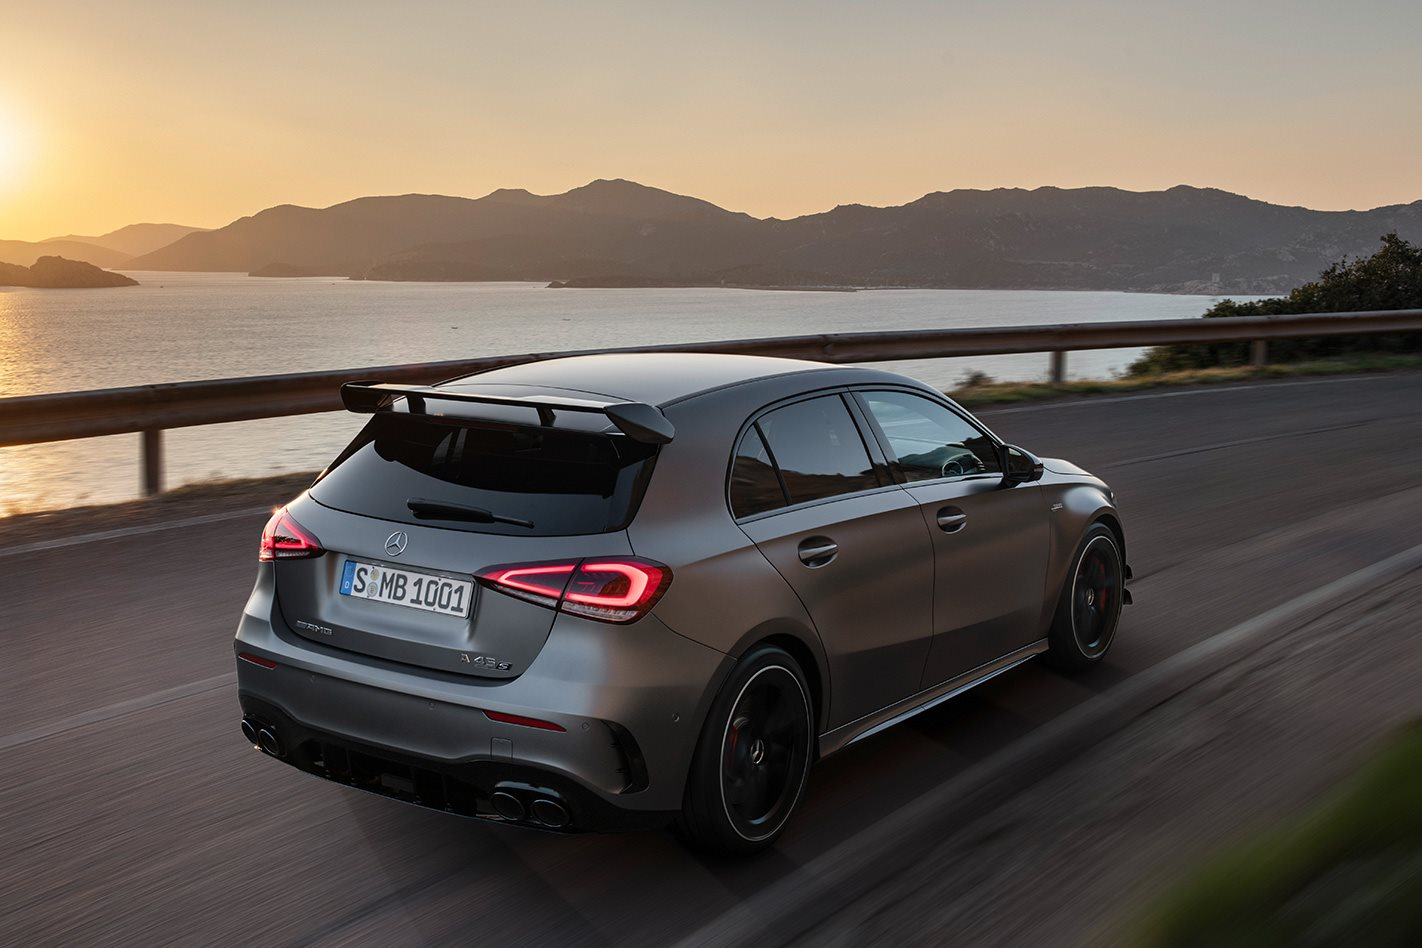 2020 Mercedes-AMG A45 S revealed